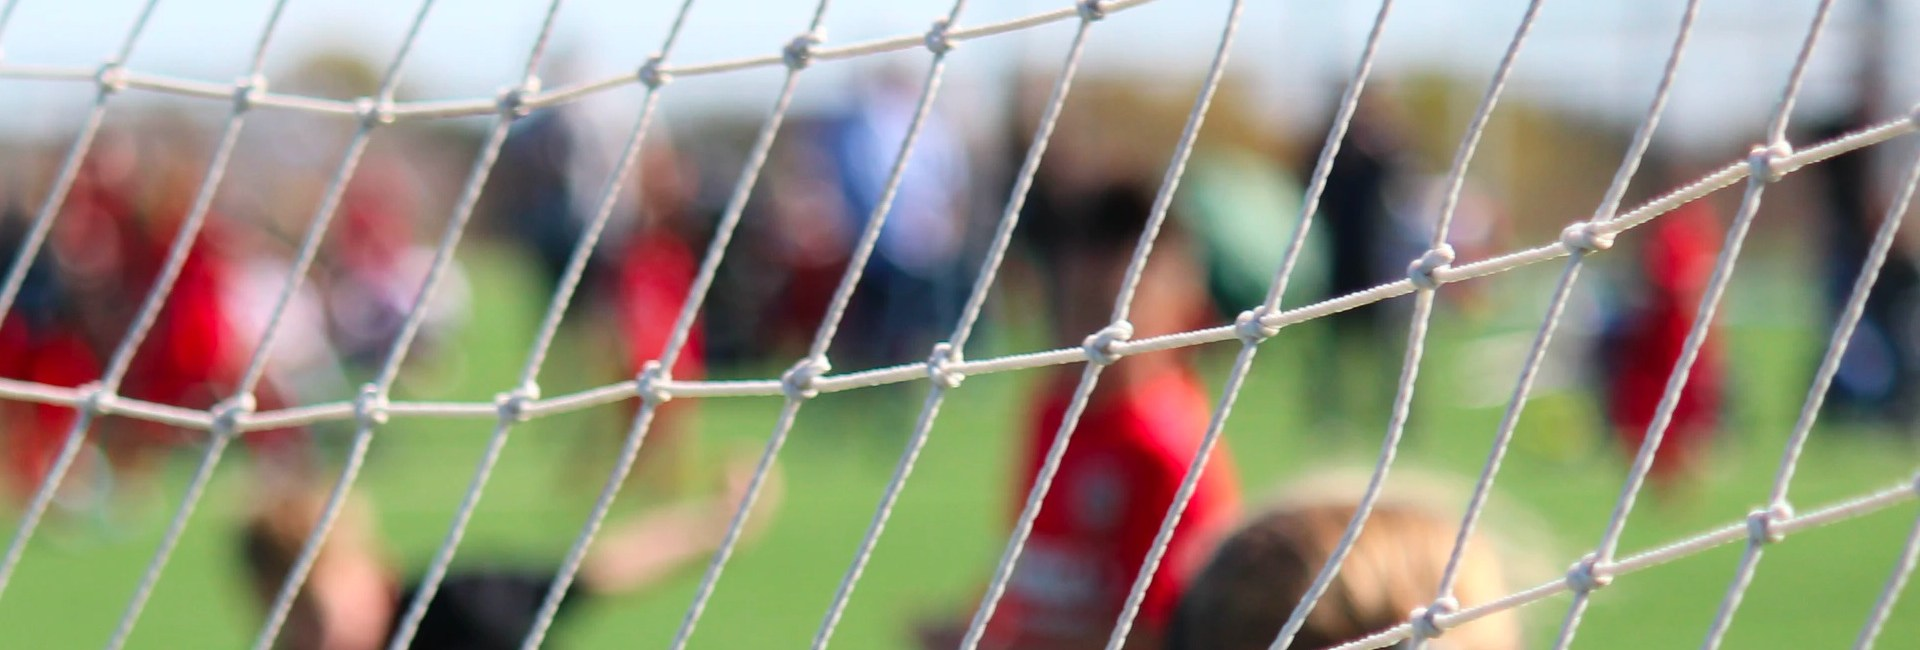 cours-sport-foot